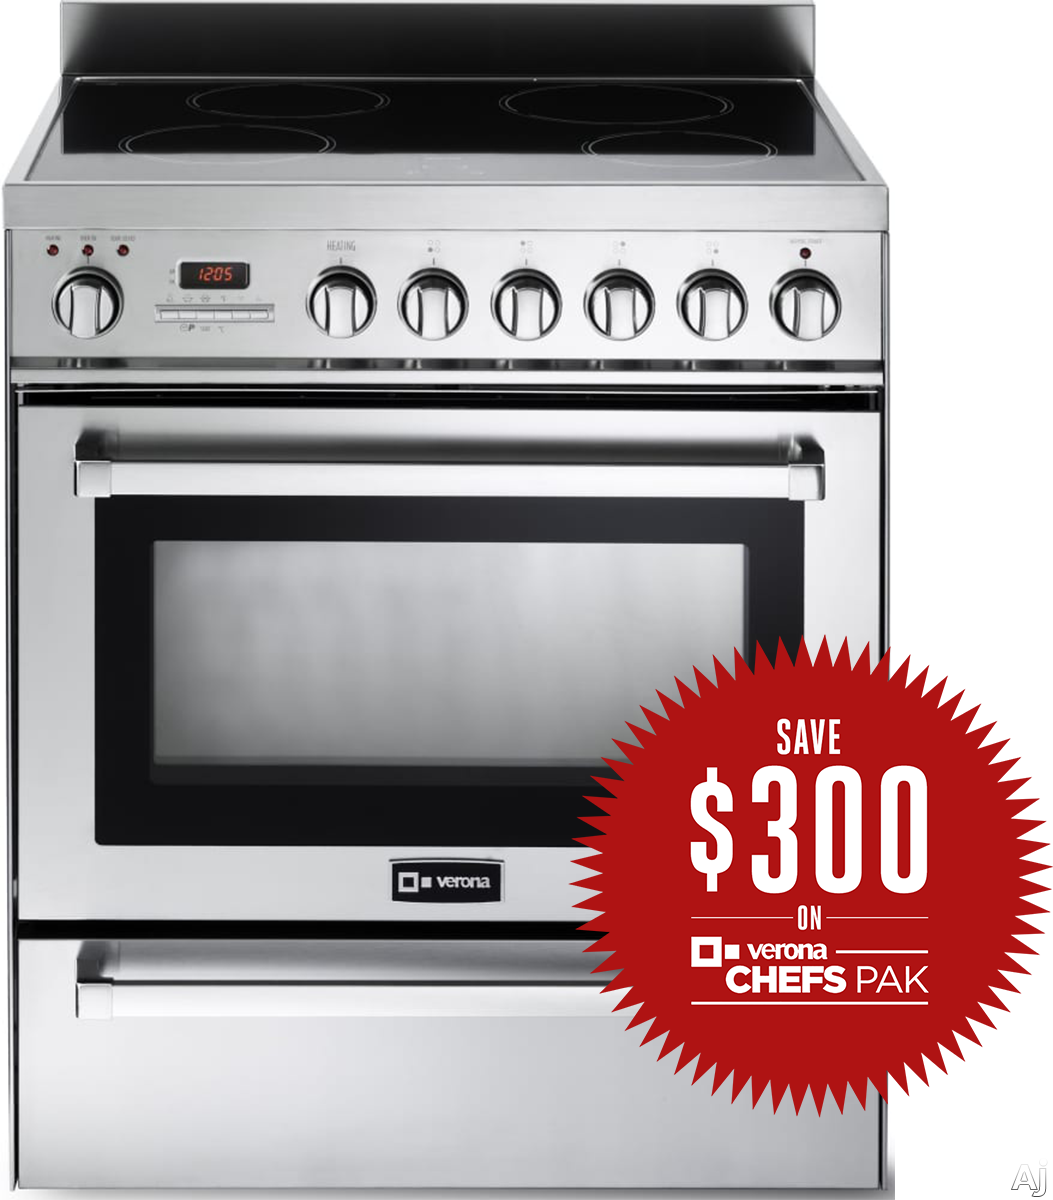 """Verona VEFSIE304PSS 30"""" Freestanding Induction Range with 4 Cooking Zones, 3.6 cu. ft. Convection Oven, Warming/Slow Cooking Drawer and Self-Cleaning Feature"""